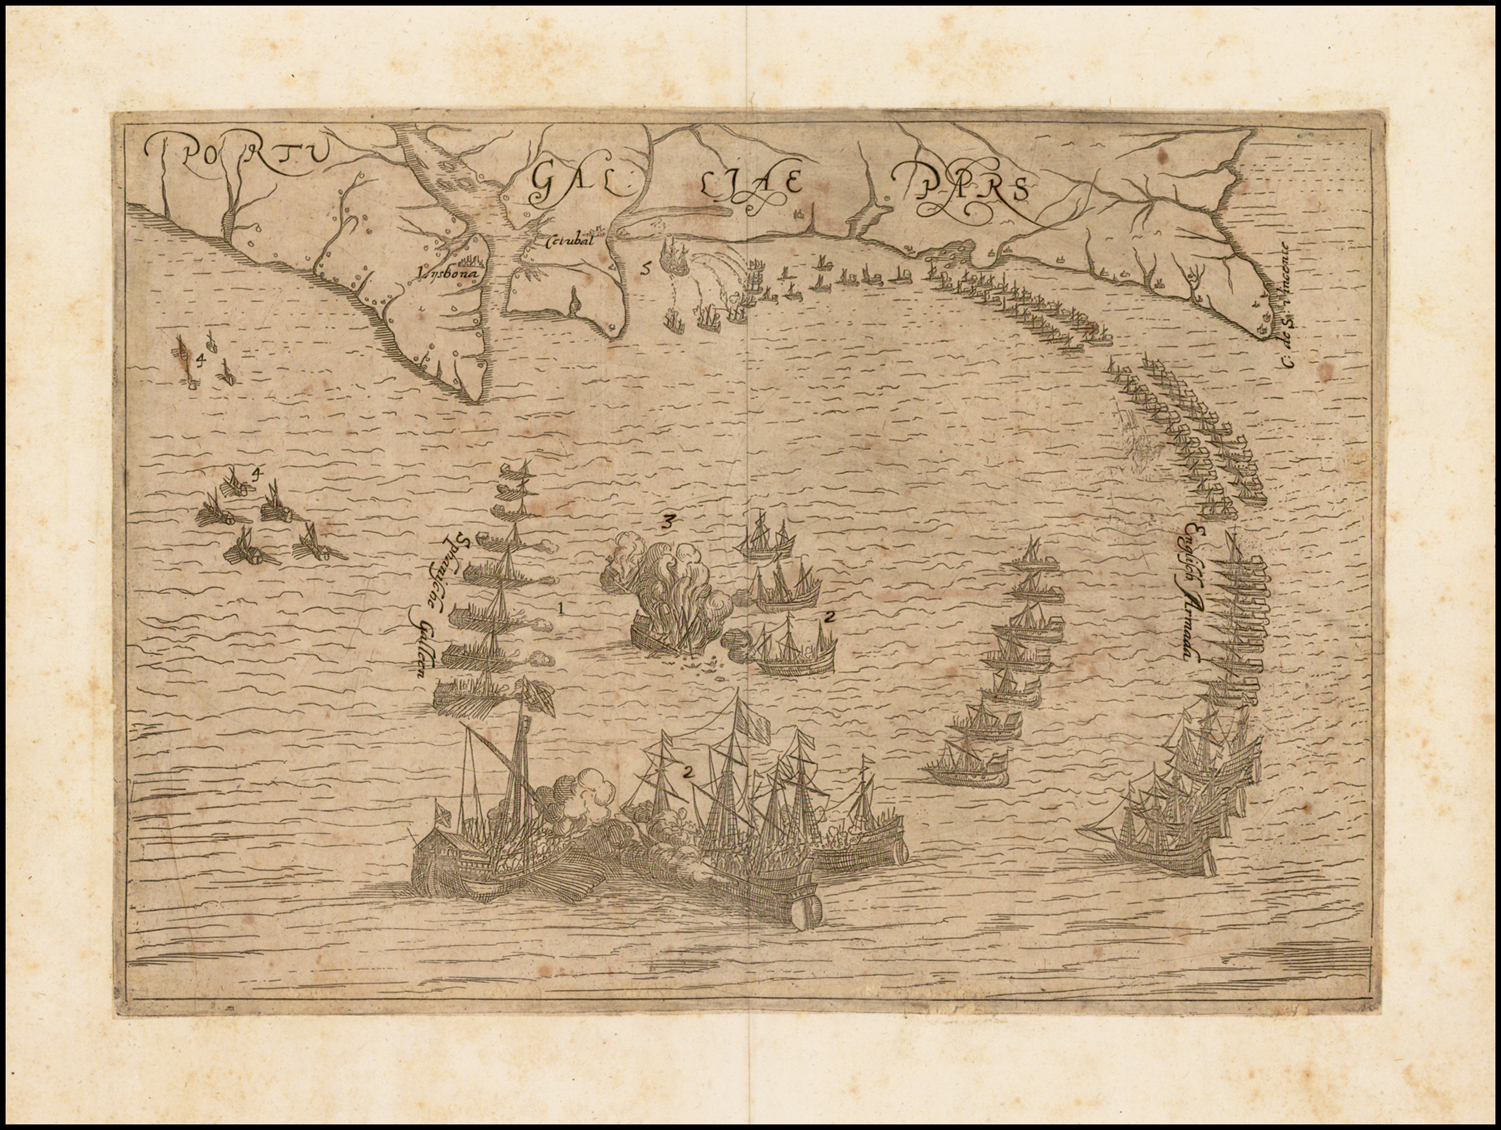 Image of: Portugaliae Pars Showing A Naval Battle Between English Armada And The Spanish Galleons Off The Coast Of Portugal Barry Lawrence Ruderman Antique Maps Inc